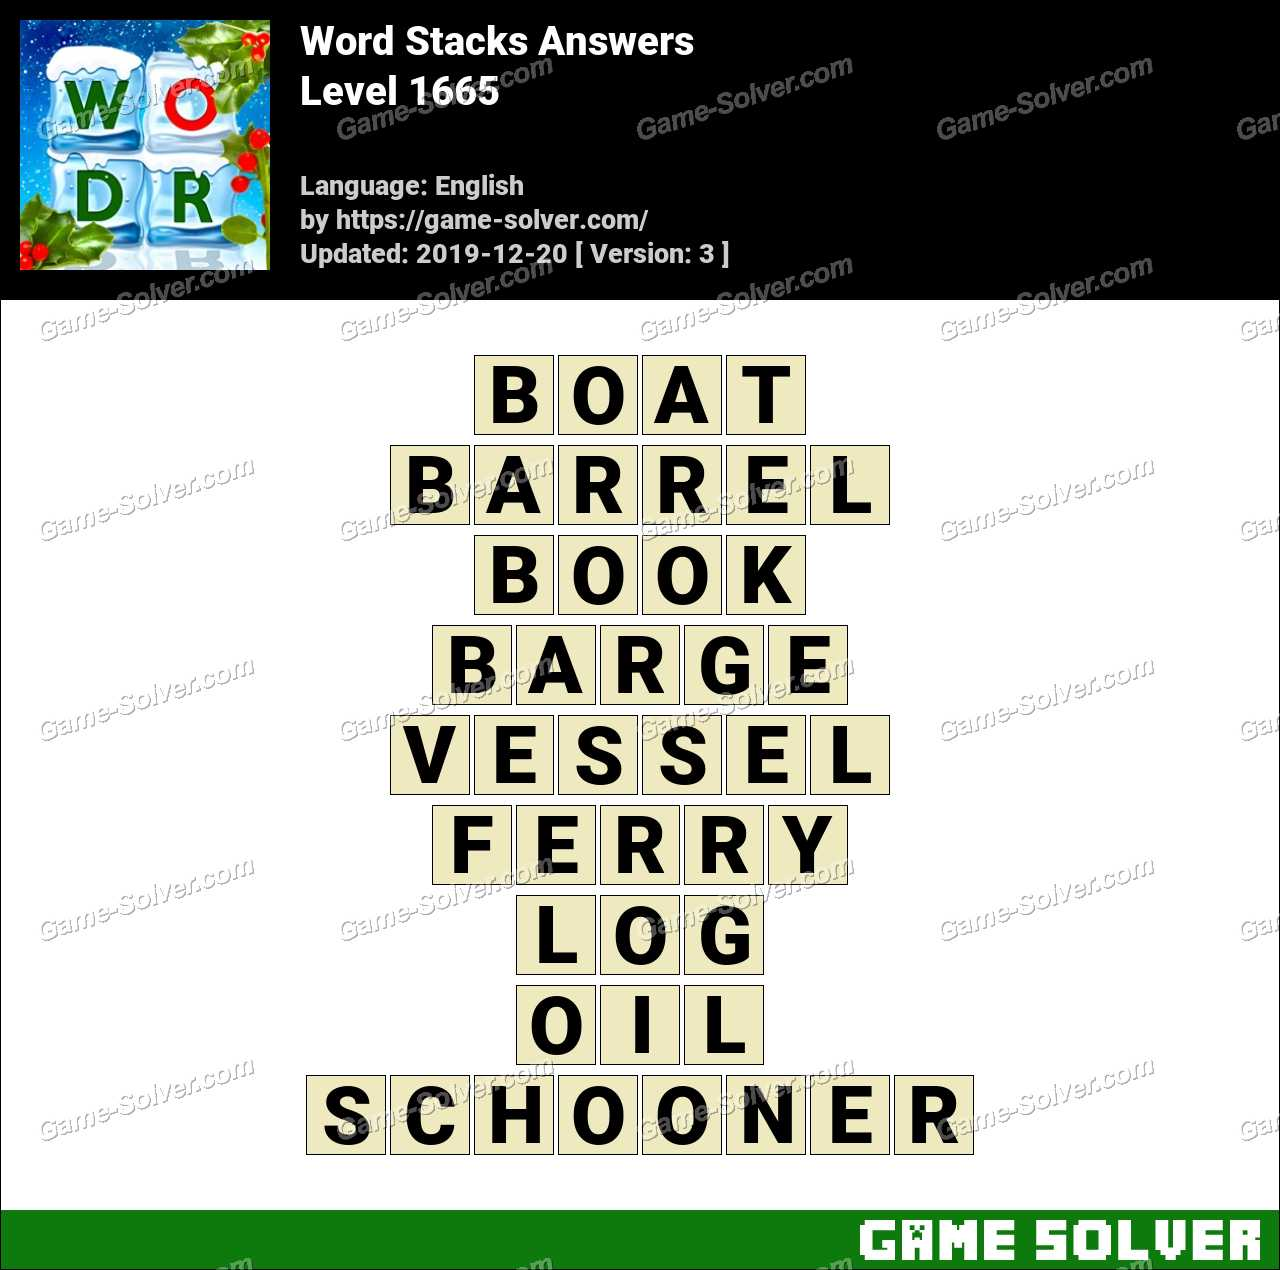 Word Stacks Level 1665 Answers